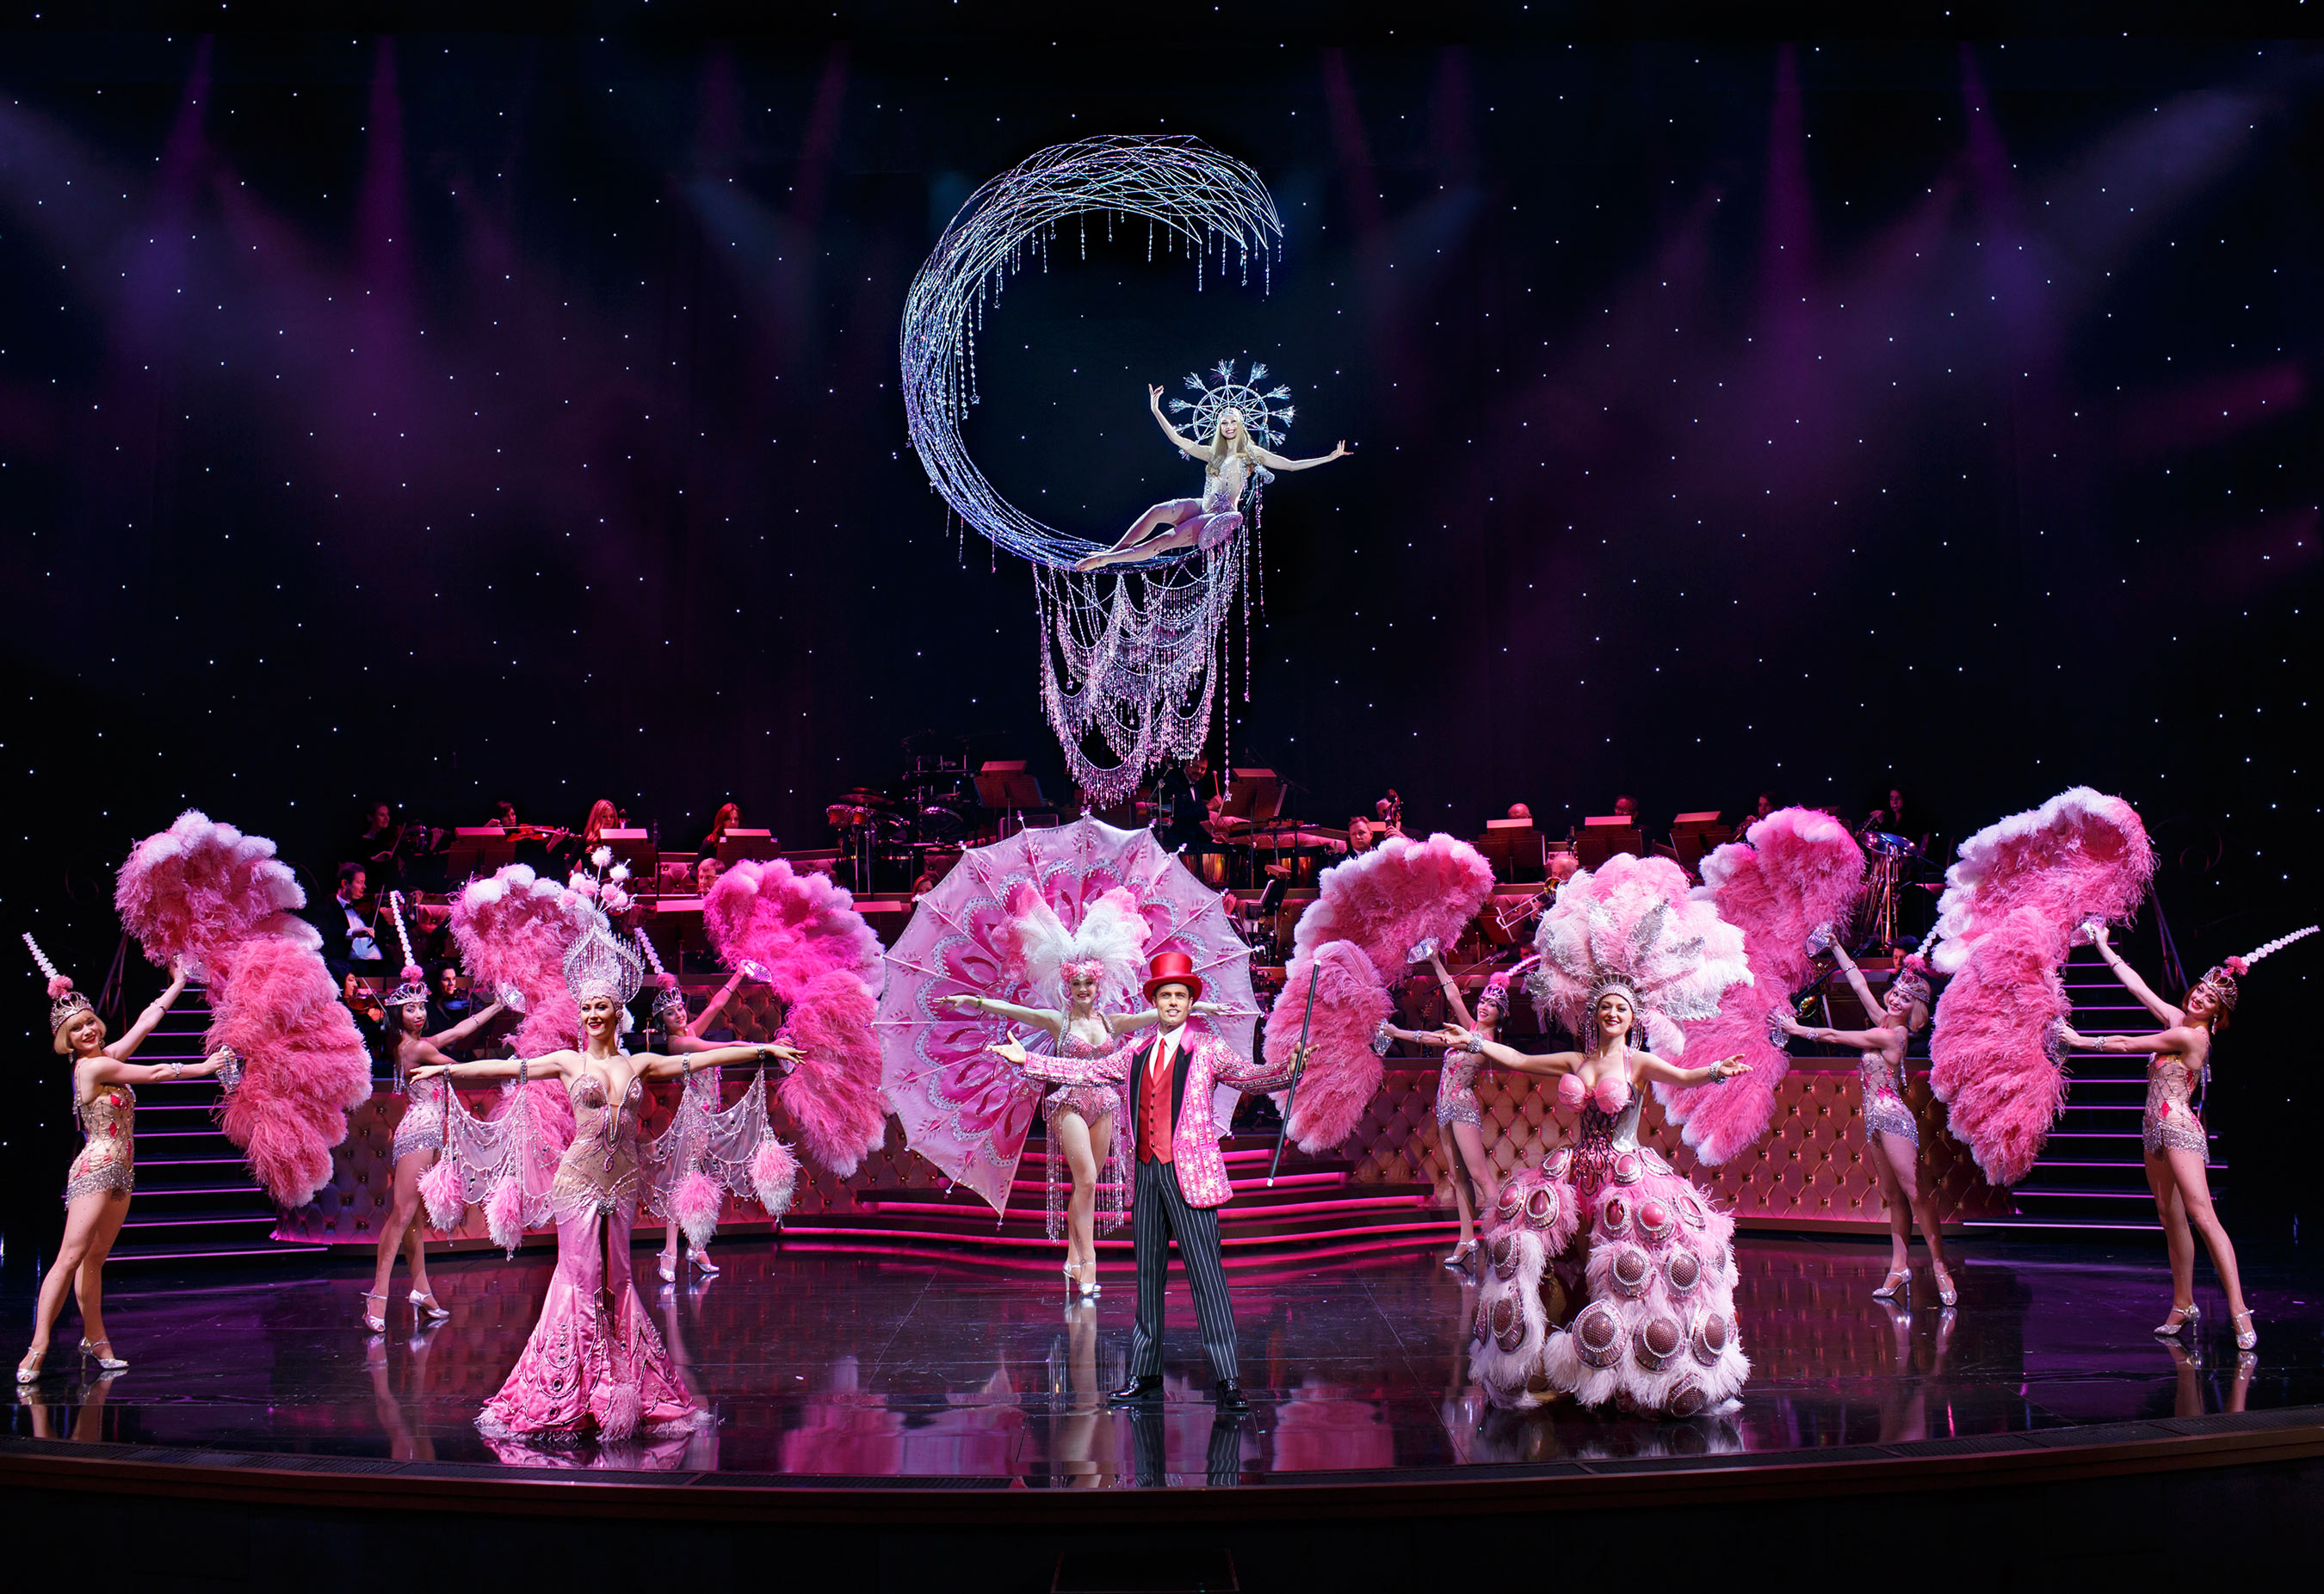 """Razzle Dazzle"" from Chicago the Musical as featured in Steve Wynn's ShowStoppers"